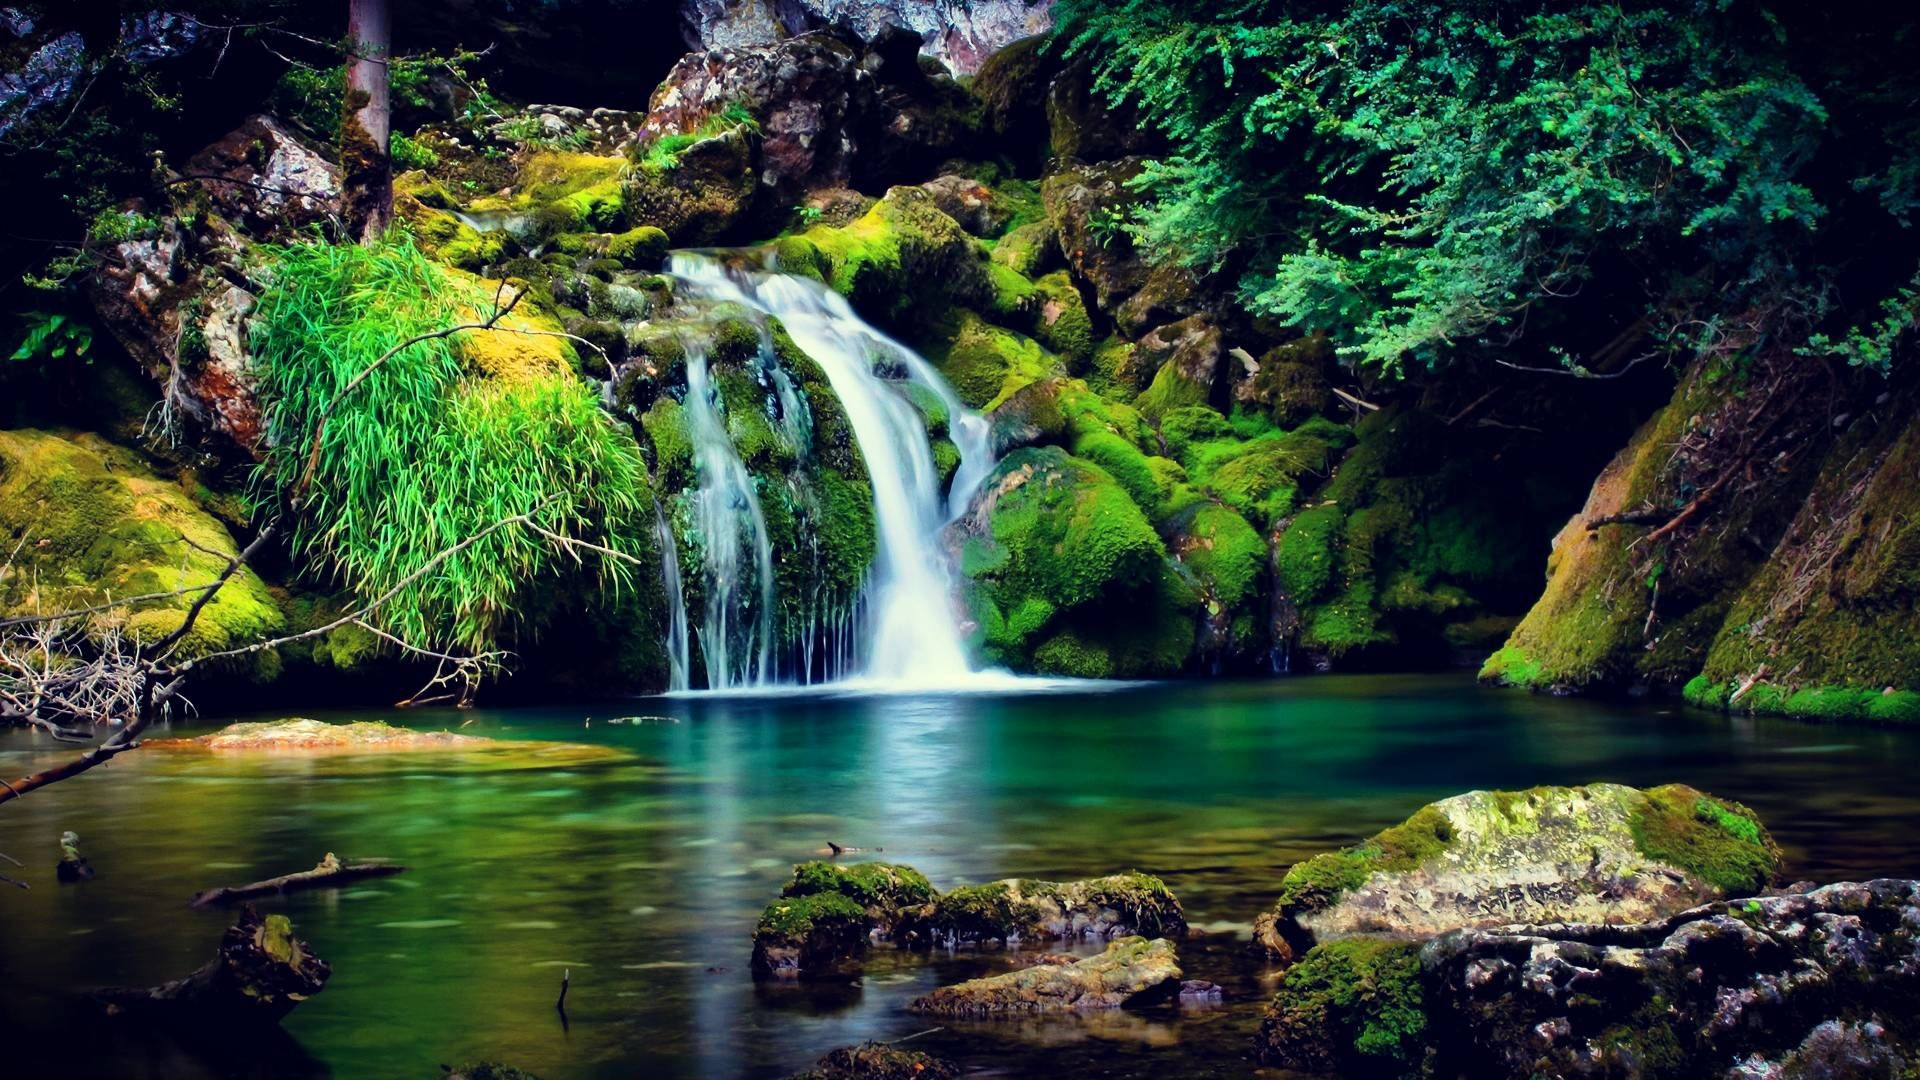 Waterfall HD Wallpaper Garden Of Eden